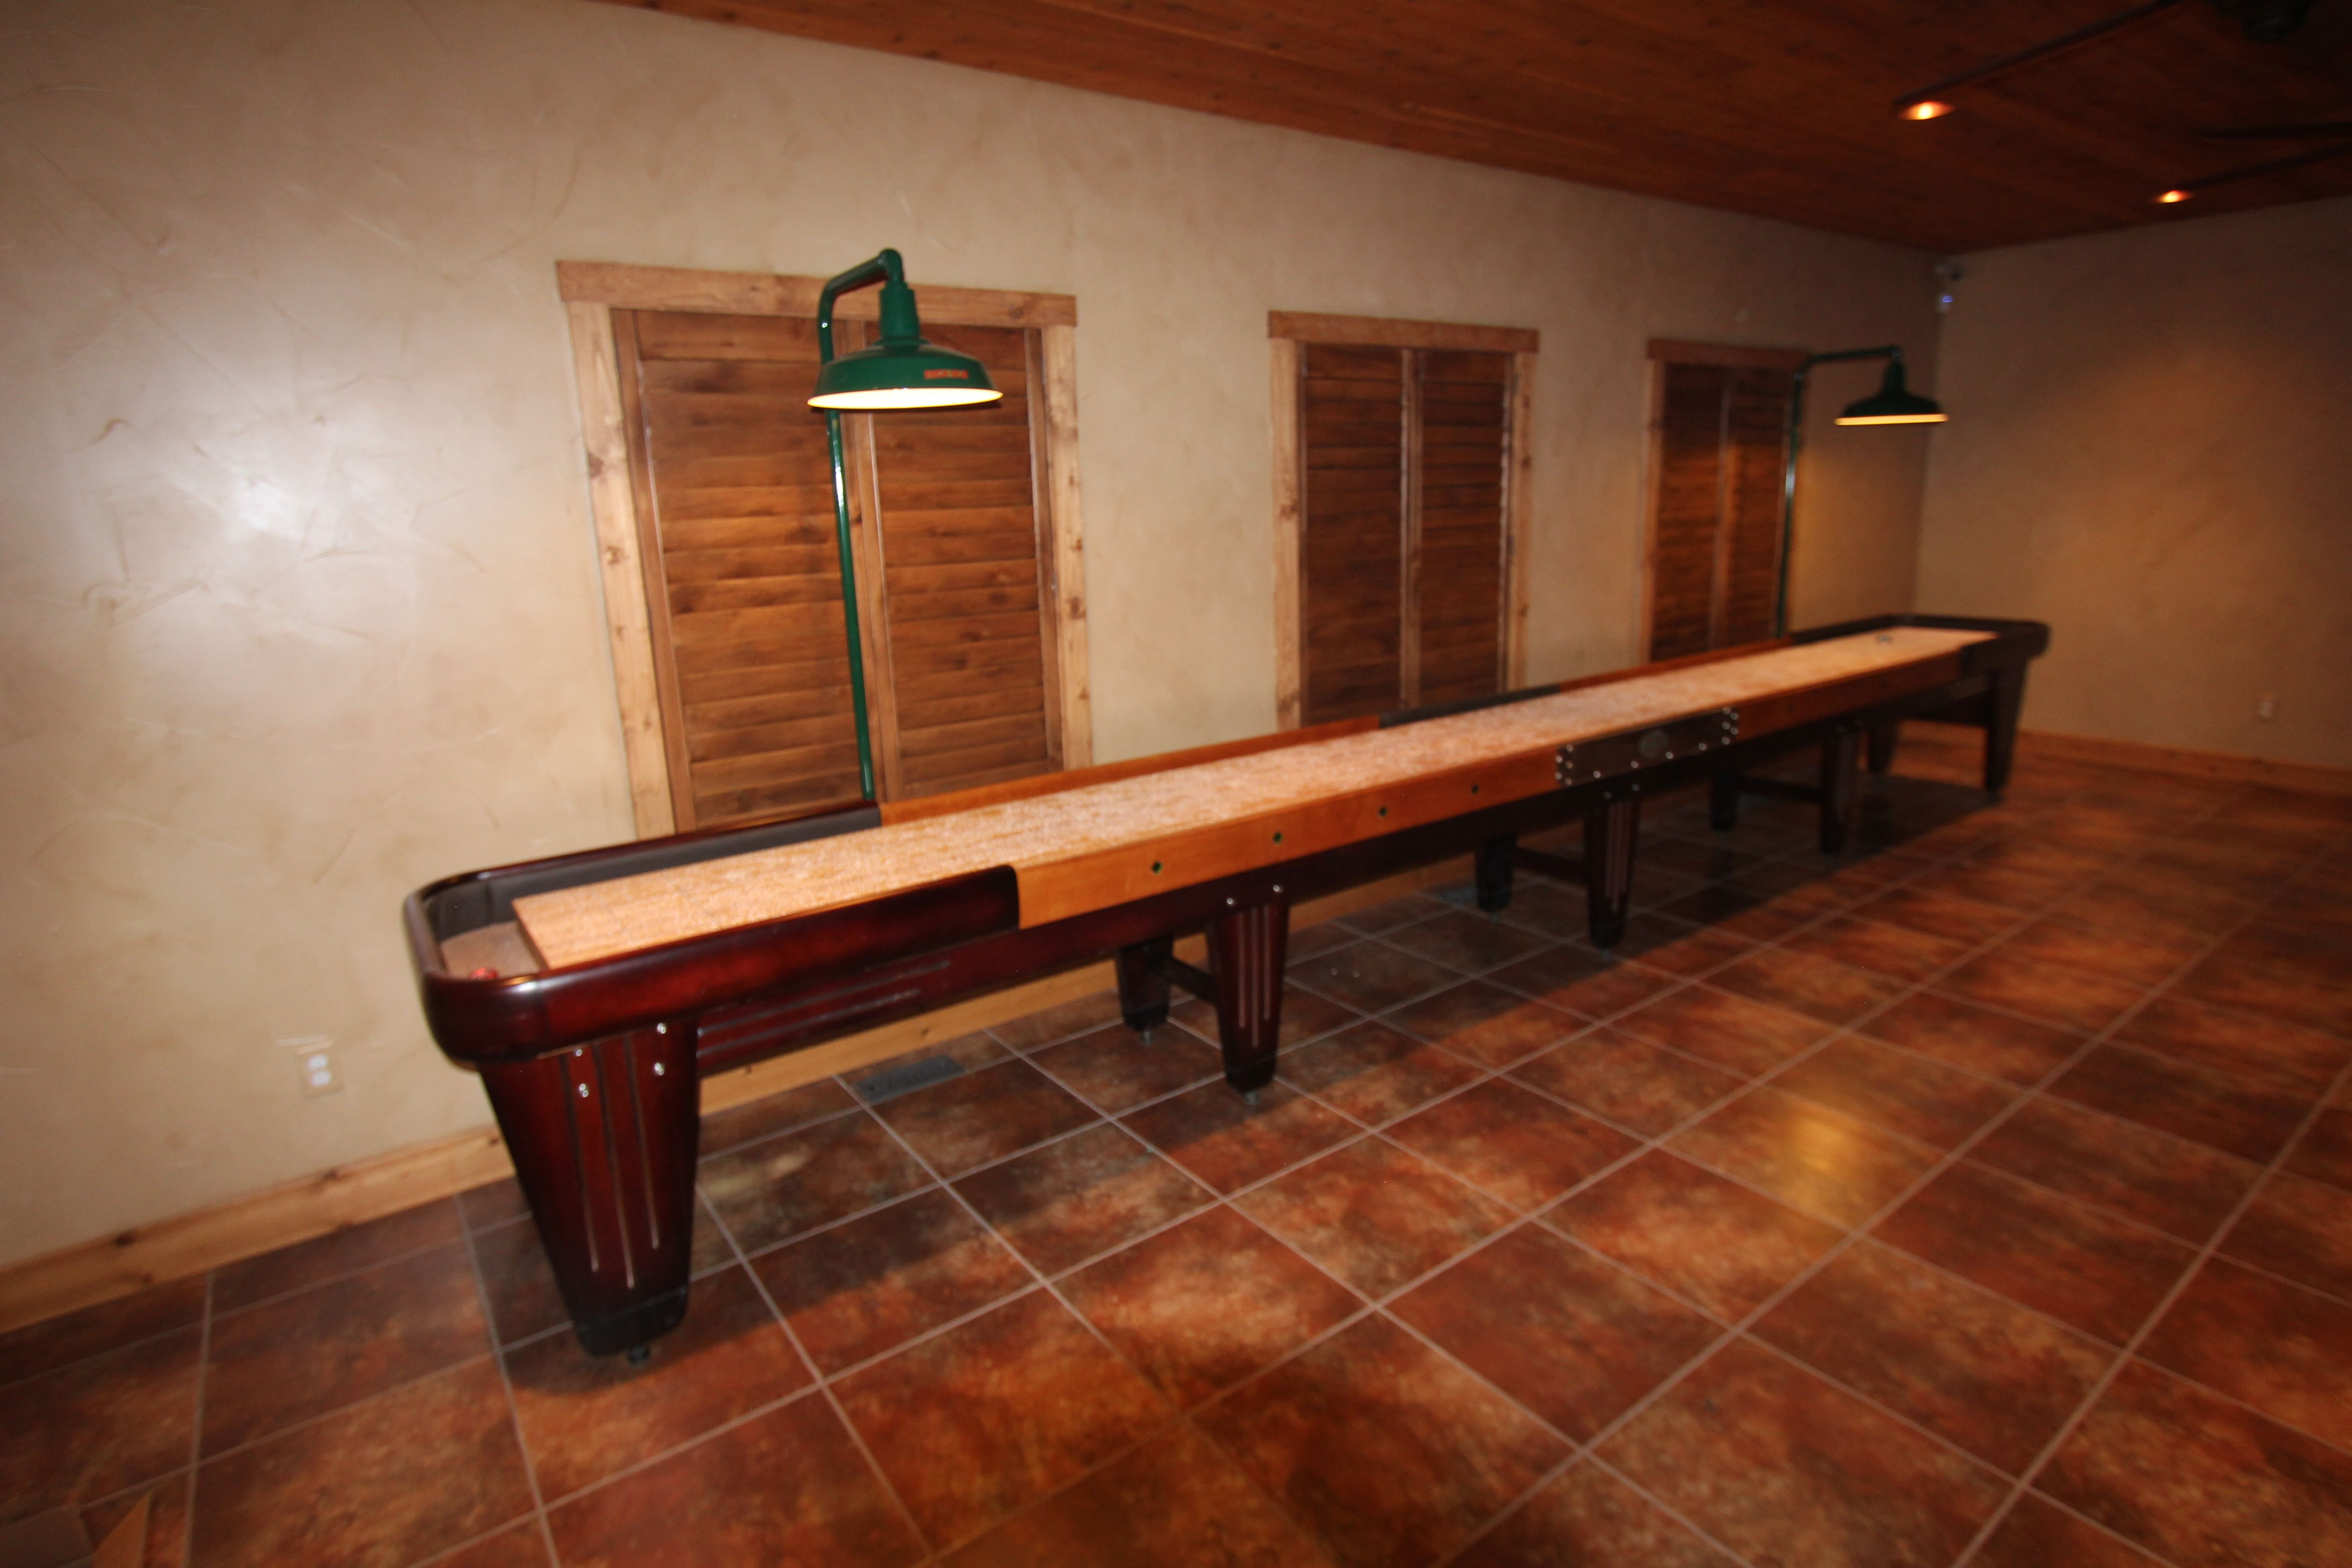 Rock Ola Antique Shuffleboard Table Expertly Restored By The Craftsmen At  McClure Tables